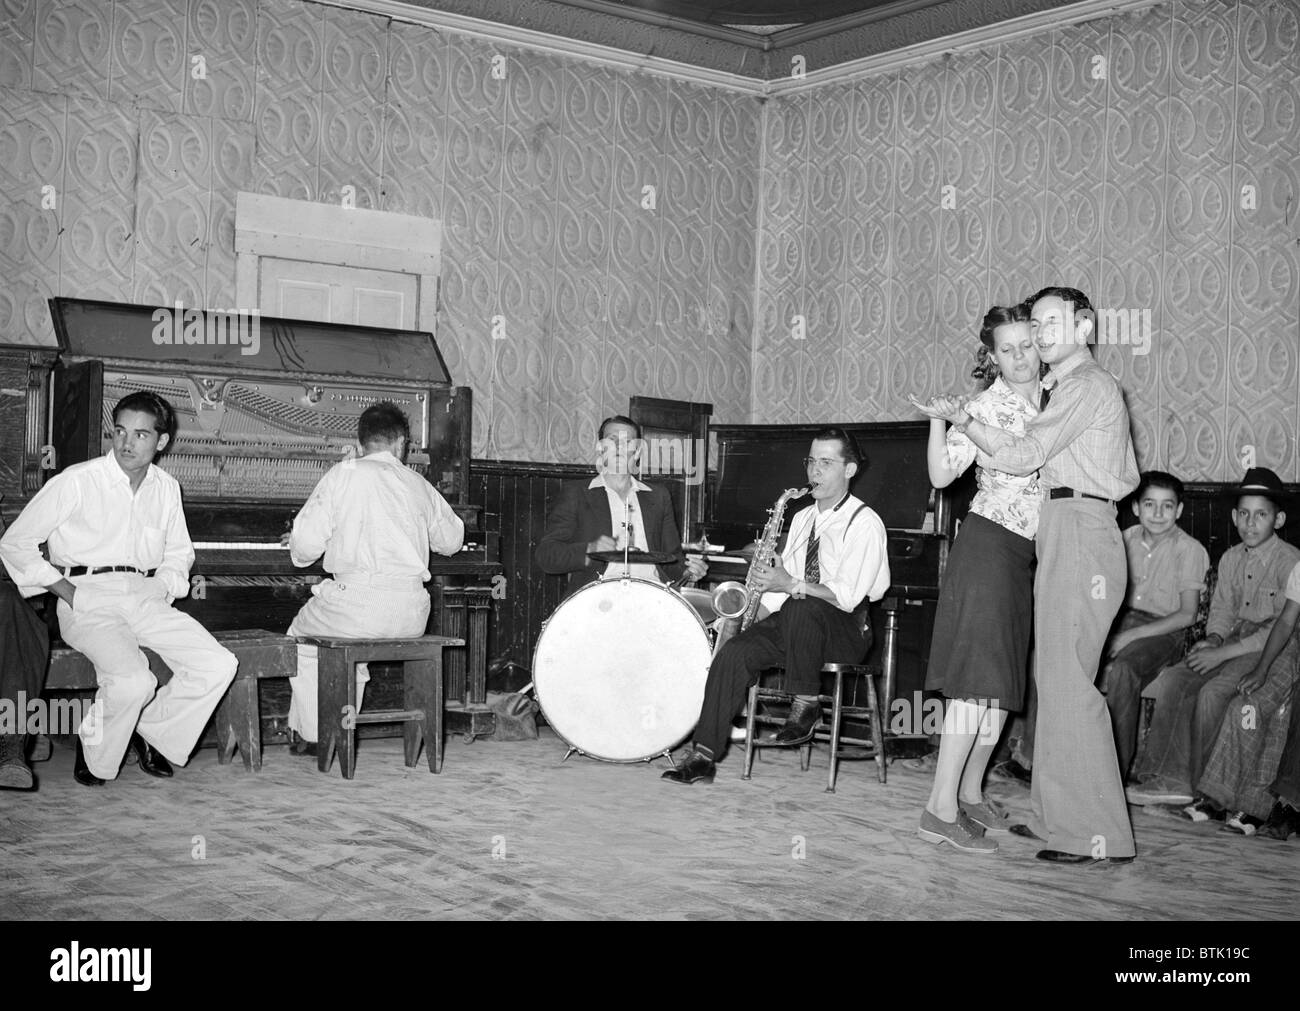 Folk Music. Orchestra and dancers at payday dance. Mogollon, New Mexico. Lee Russell, photographer, 1940 - Stock Image